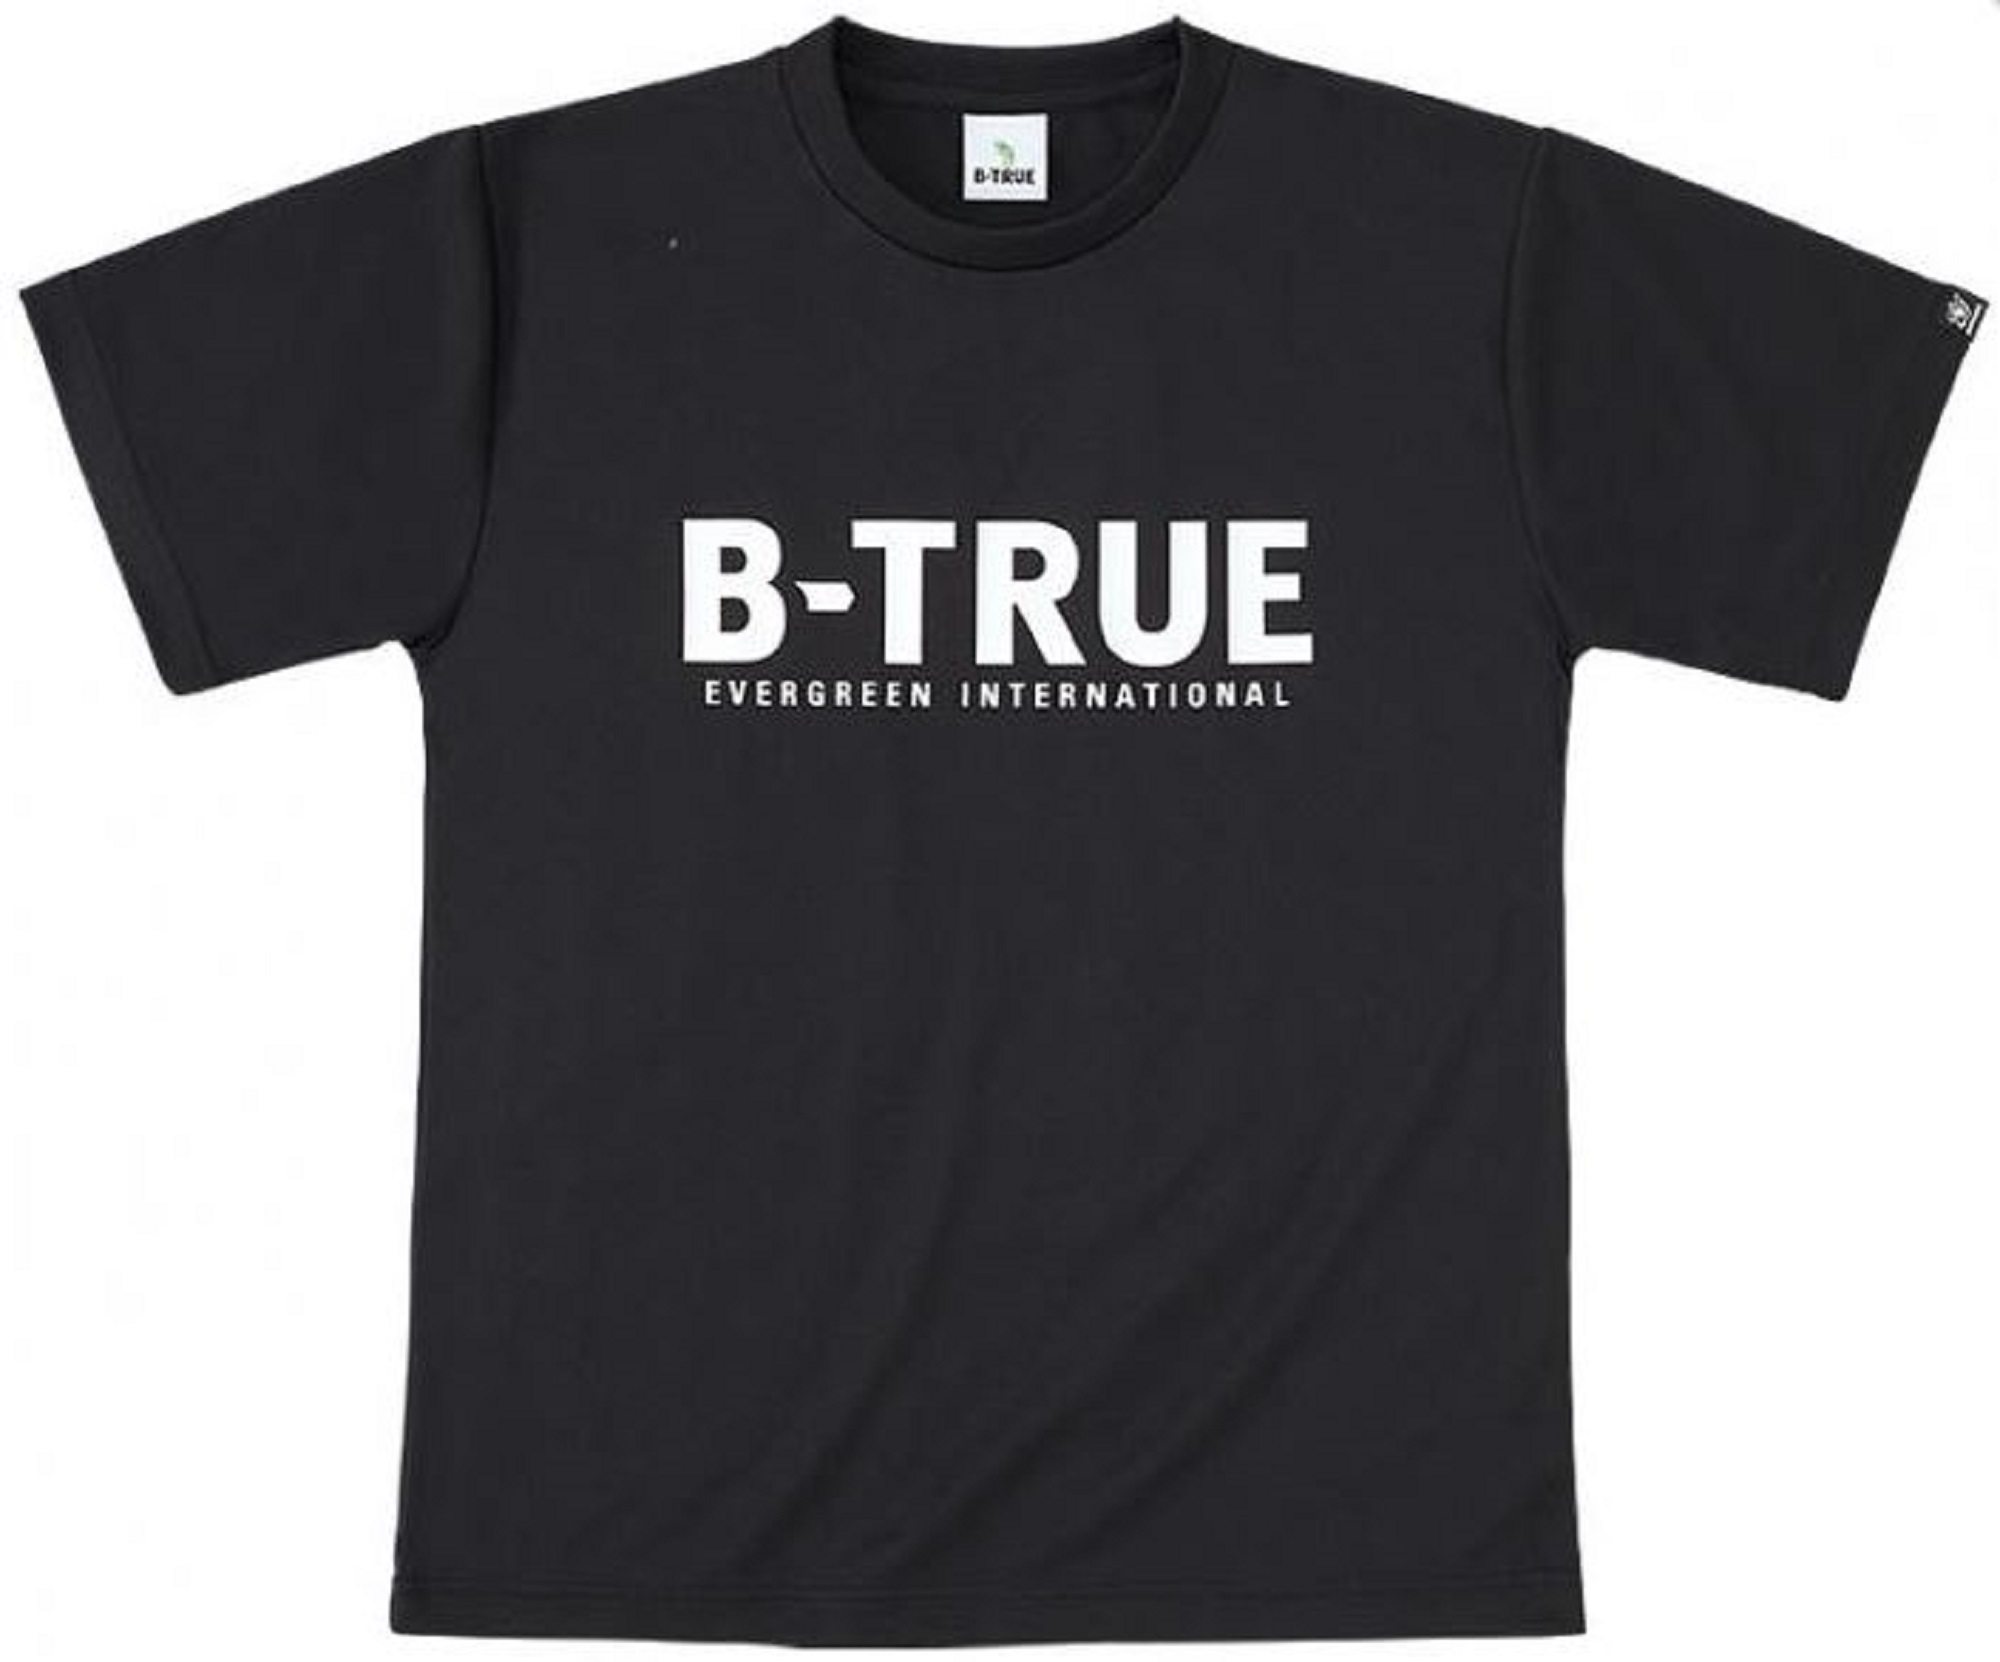 Evergreen T-Shirt Dry Fit Short Sleeve B-True A Type Size S Black (7671)